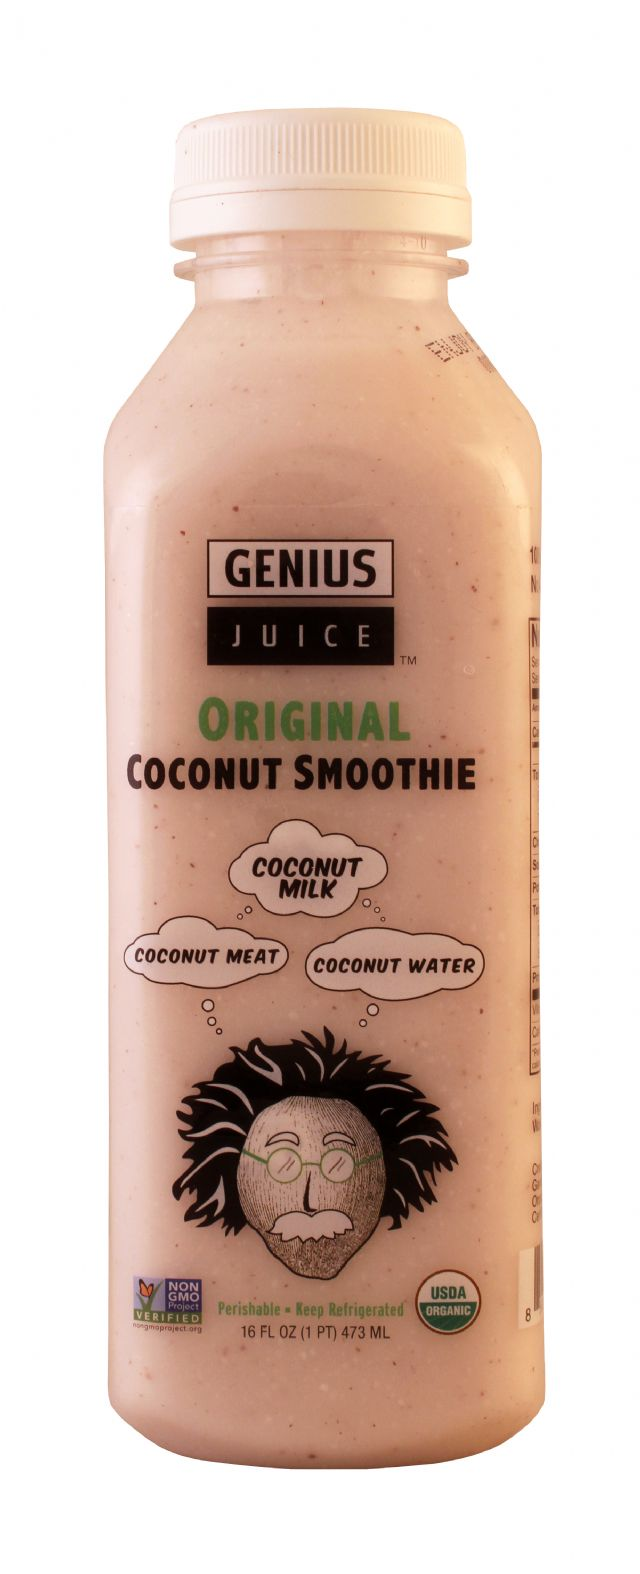 Genius Coconut Smoothies: Genius Original Front